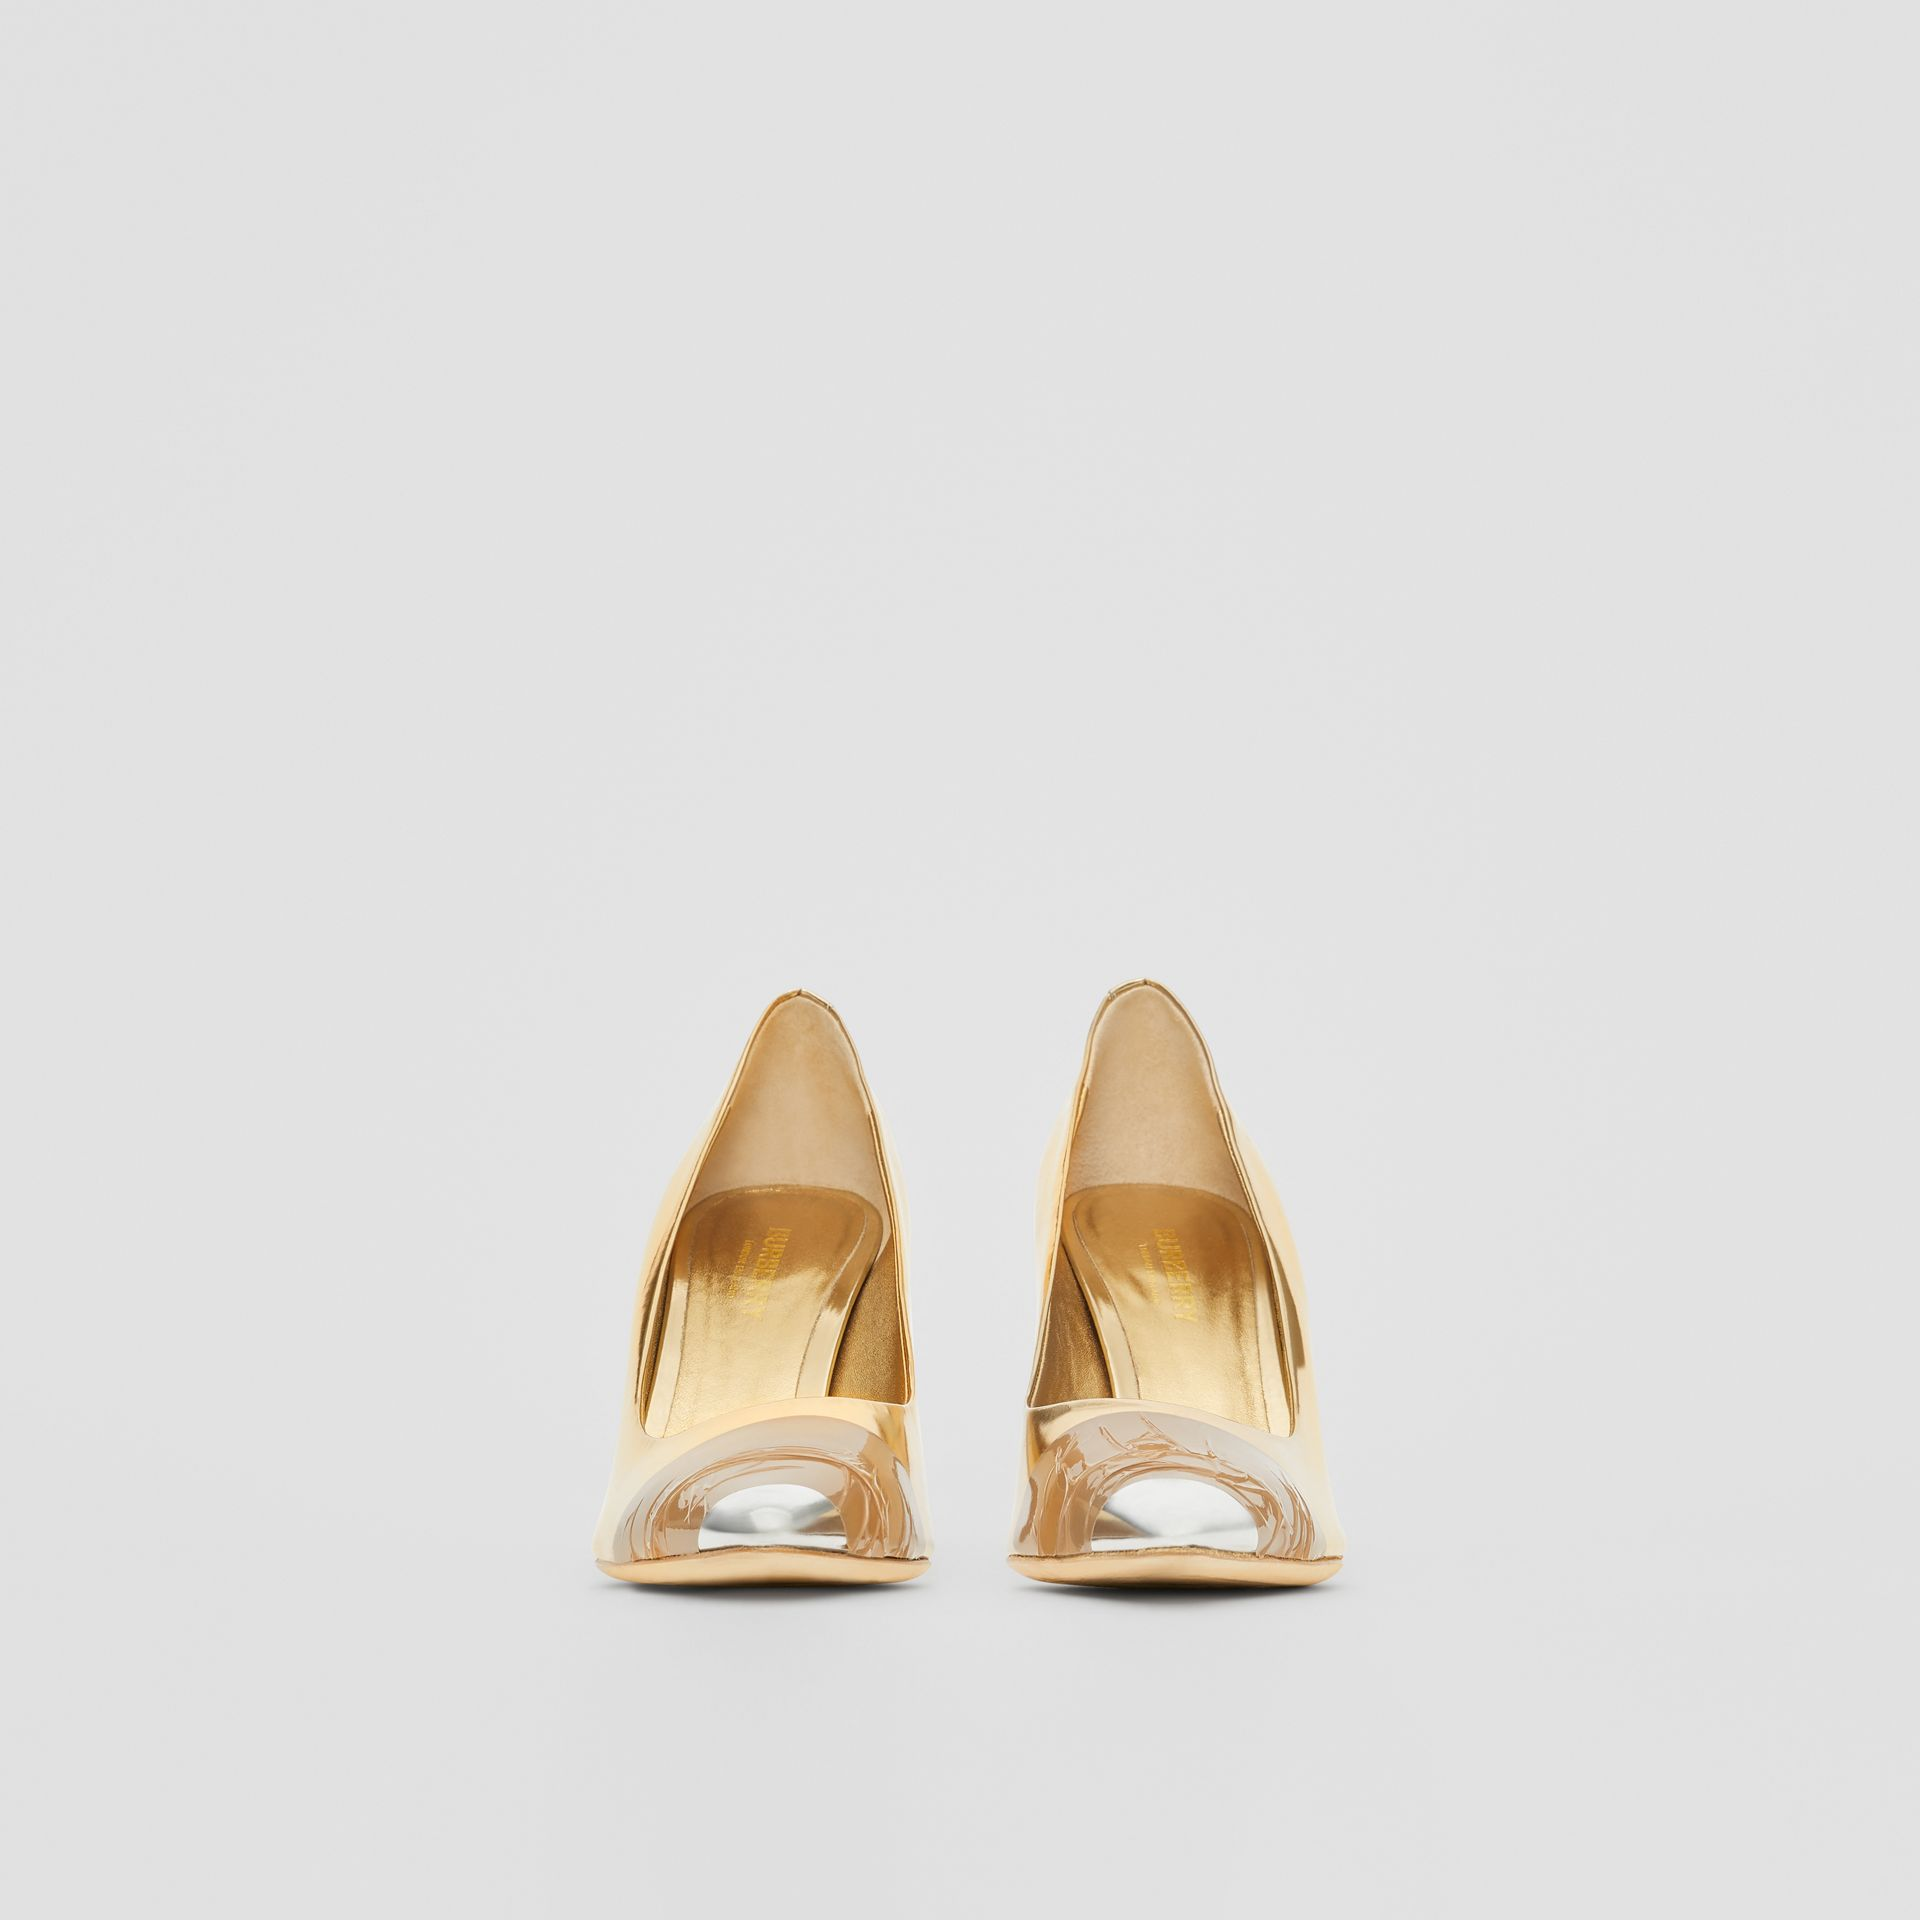 Tape Detail Mirrored Leather Pumps in Gold/silver - Women | Burberry Australia - gallery image 3